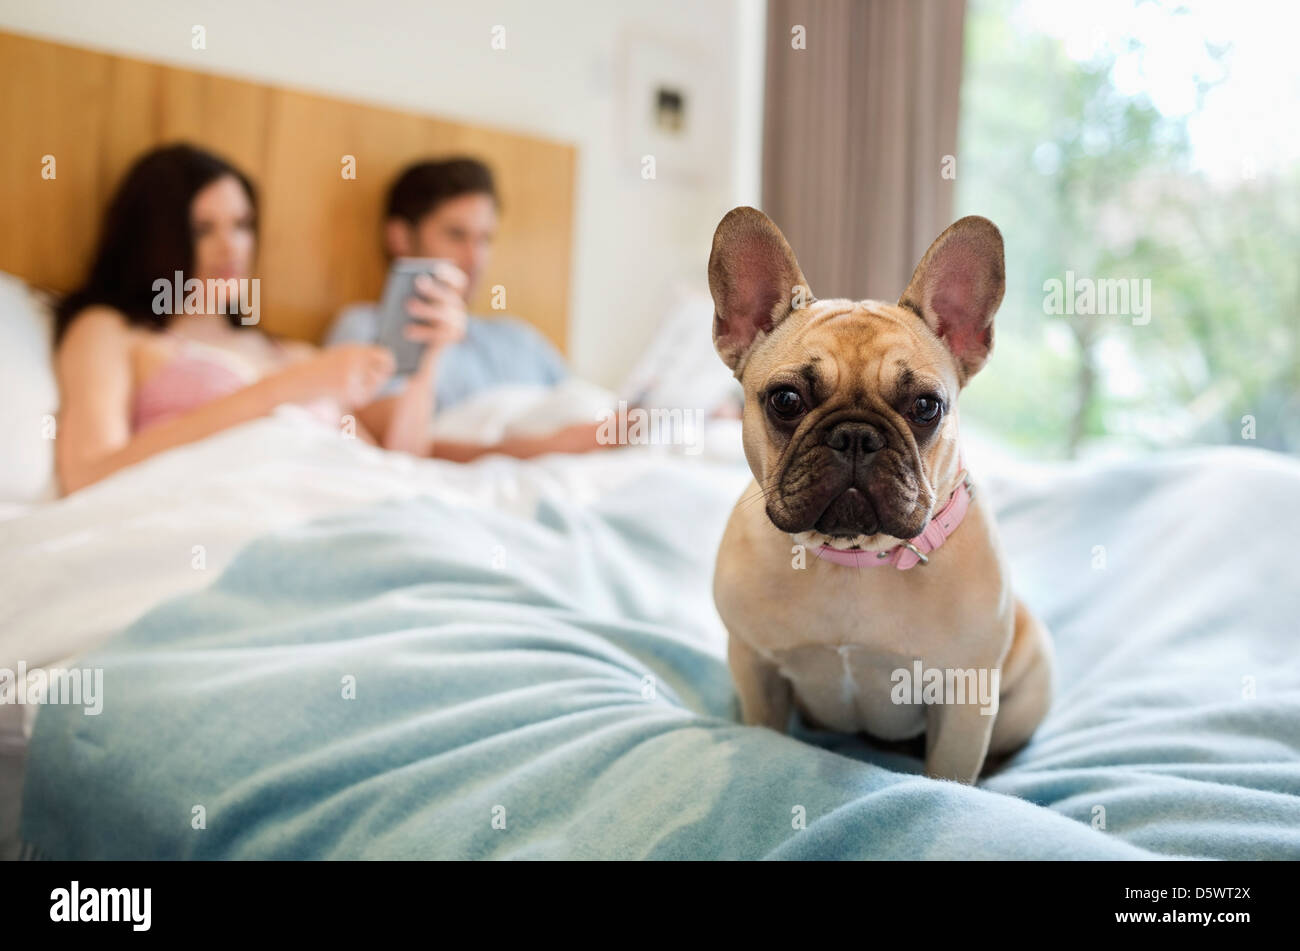 Dog sitting with couple in bed Stock Photo